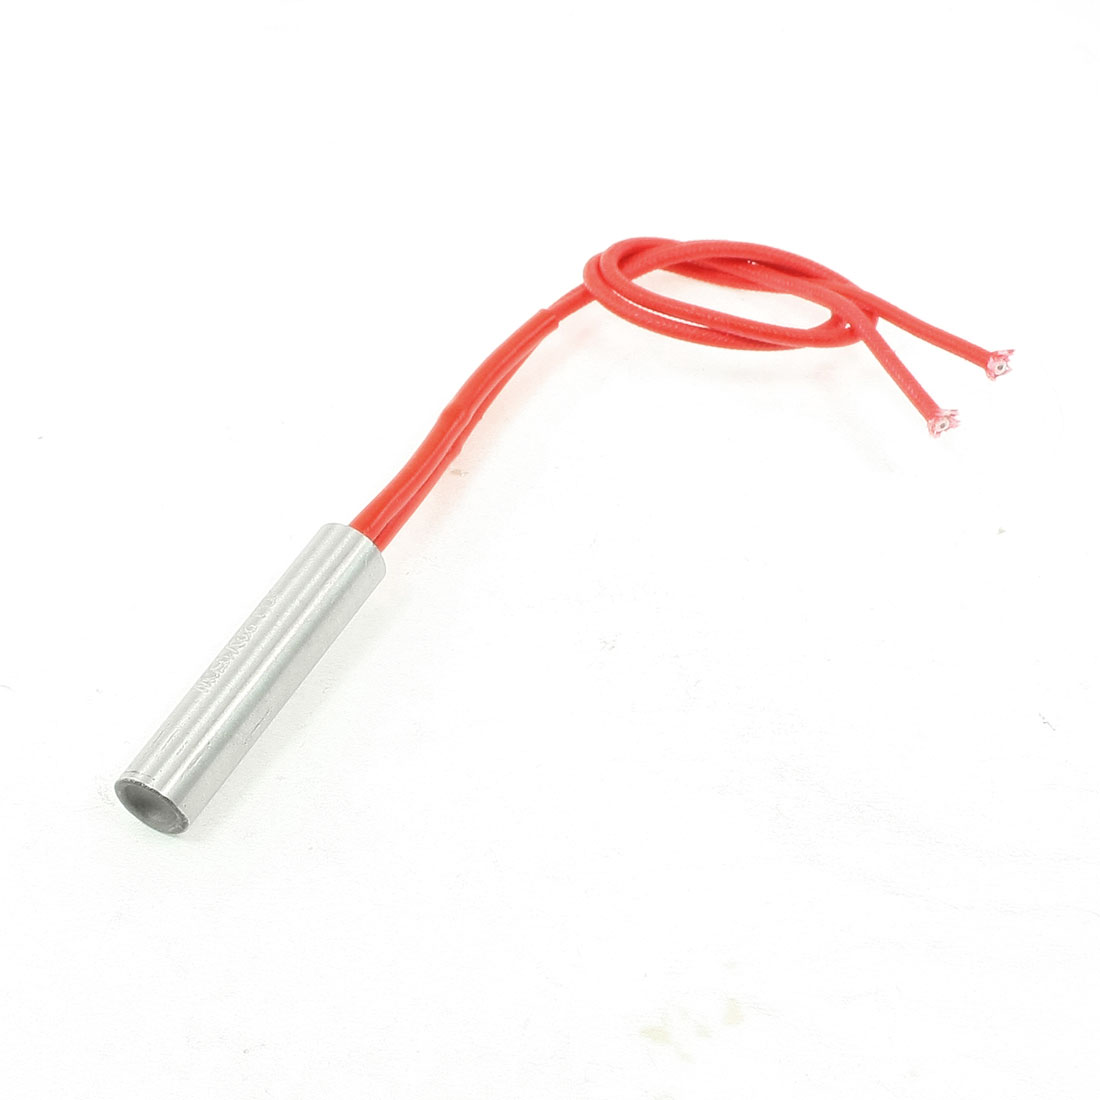 "220V 150W 0.47"" x 1.97"" Cylindrical Heating Element Cartridge Heater"